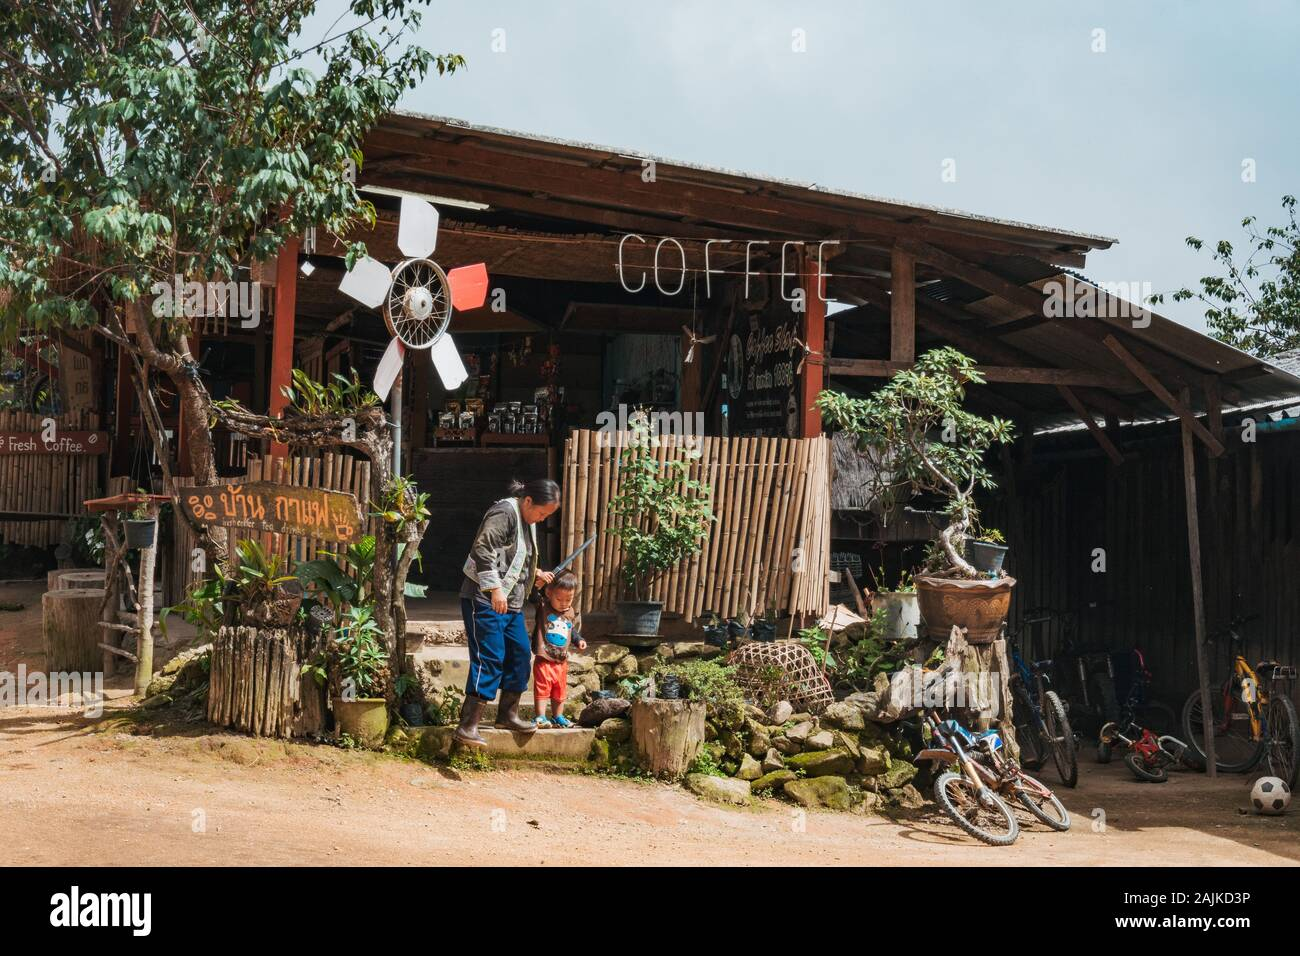 A Thai woman helps a young boy down stairs at a quiet, small wooden coffee shop in a rural village atop of a hill outside of Chiang Mai, Thailand Stock Photo